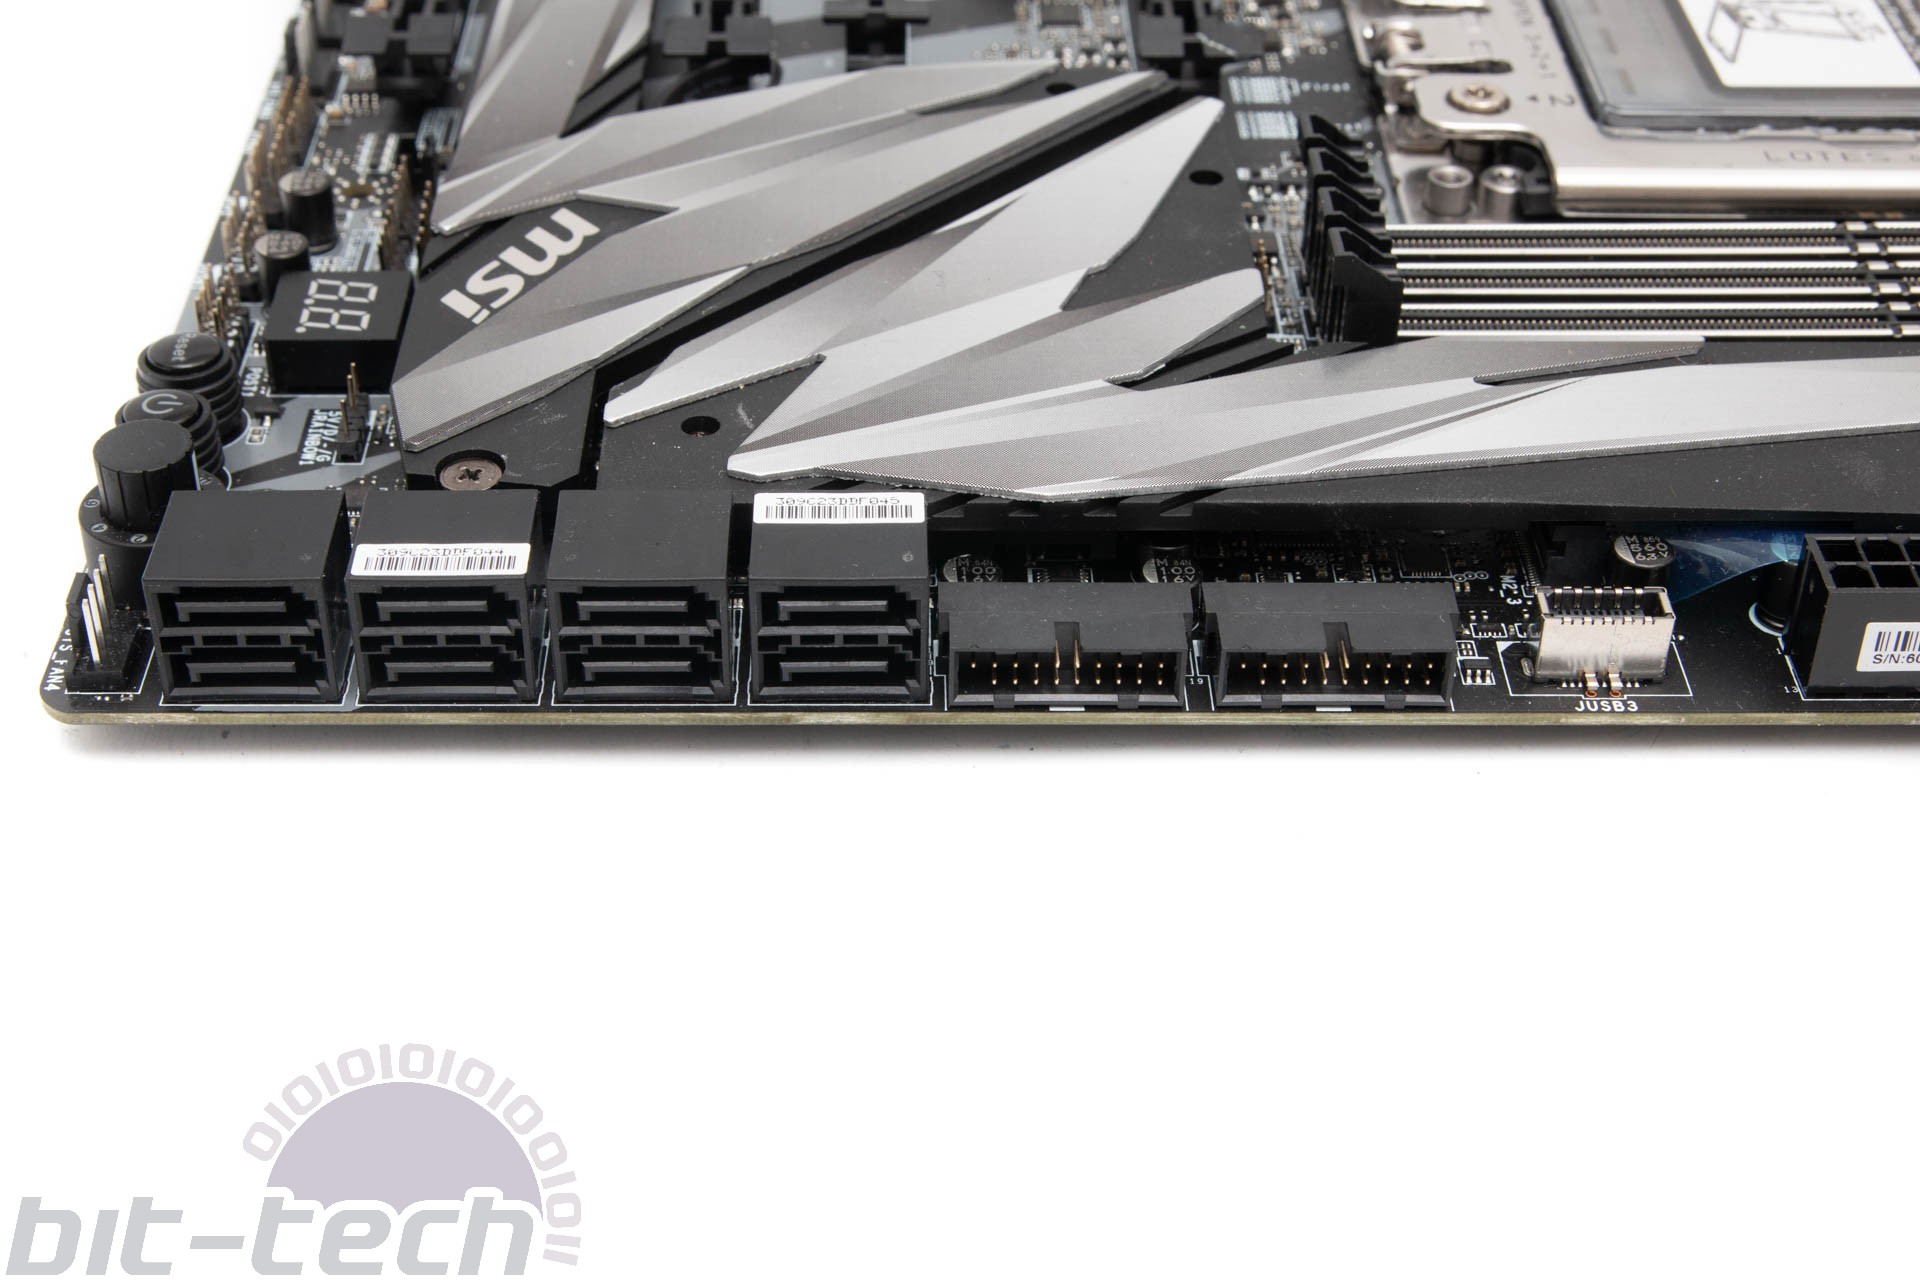 MSI MEG X399 Creation Review | bit-tech net